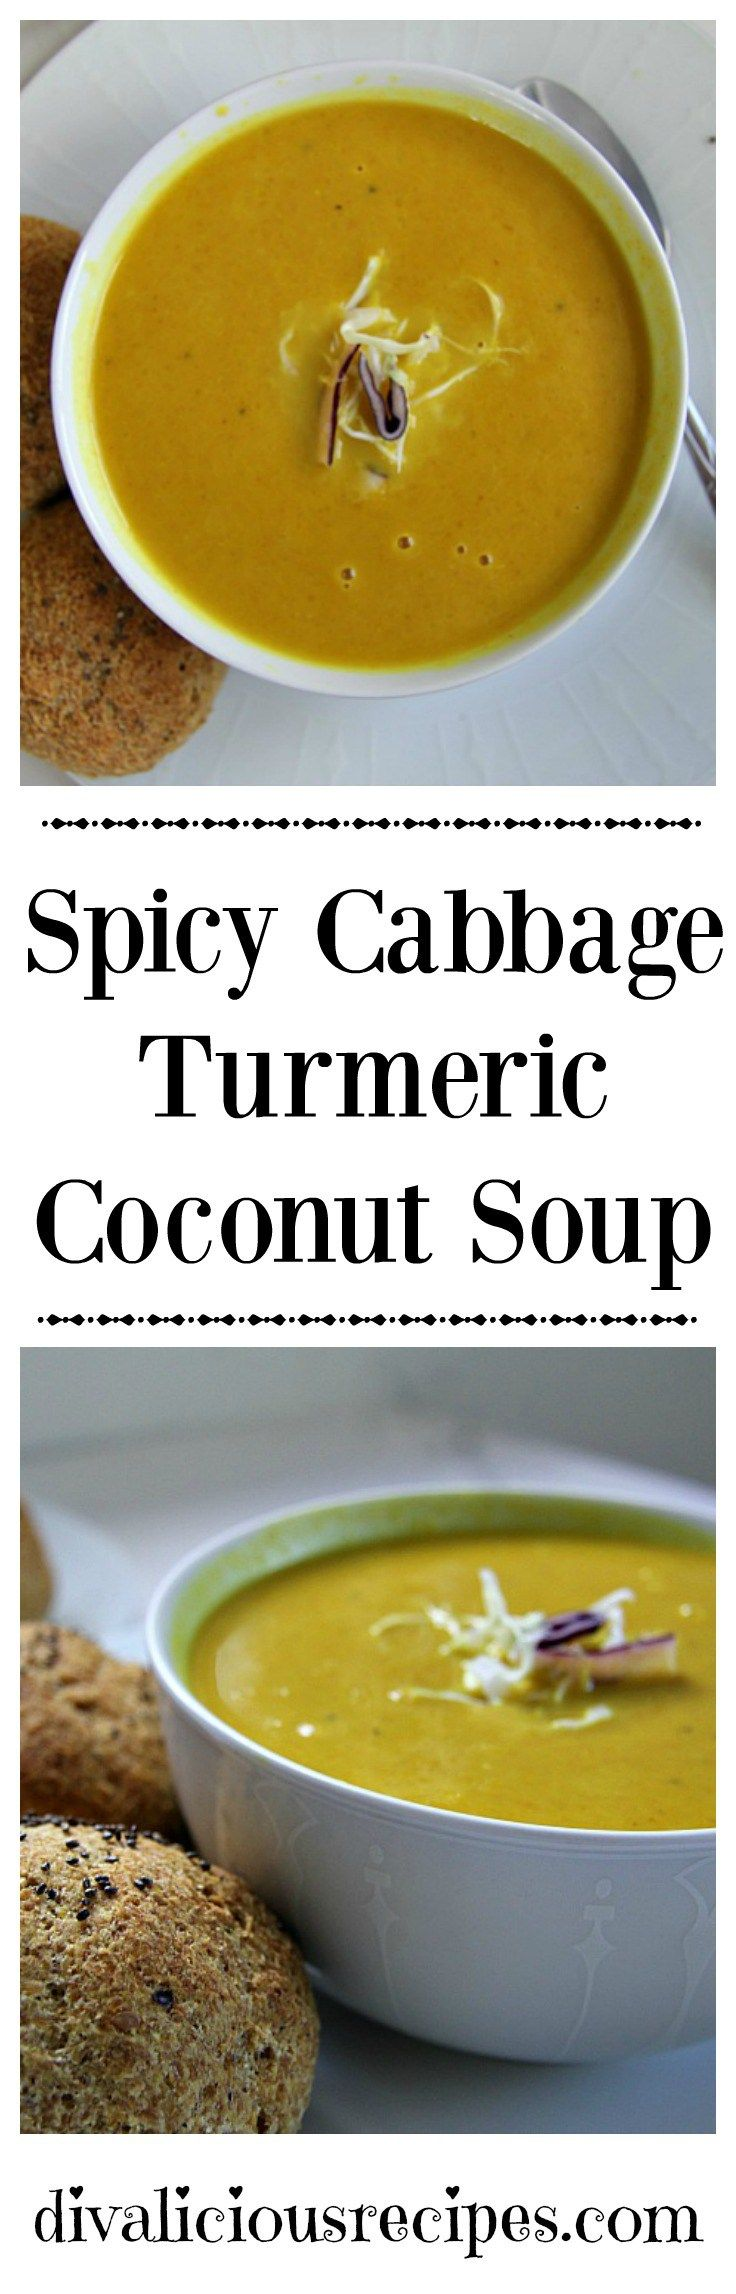 A cabbage turmeric nourishing soup with a splash of coconut milk. This also makes a great cleansing, anti-inflammatory soup. Recipe: http://divaliciousrecipes.com/2017/01/04/spicy-cabbage-turmeric-coconut-soup/